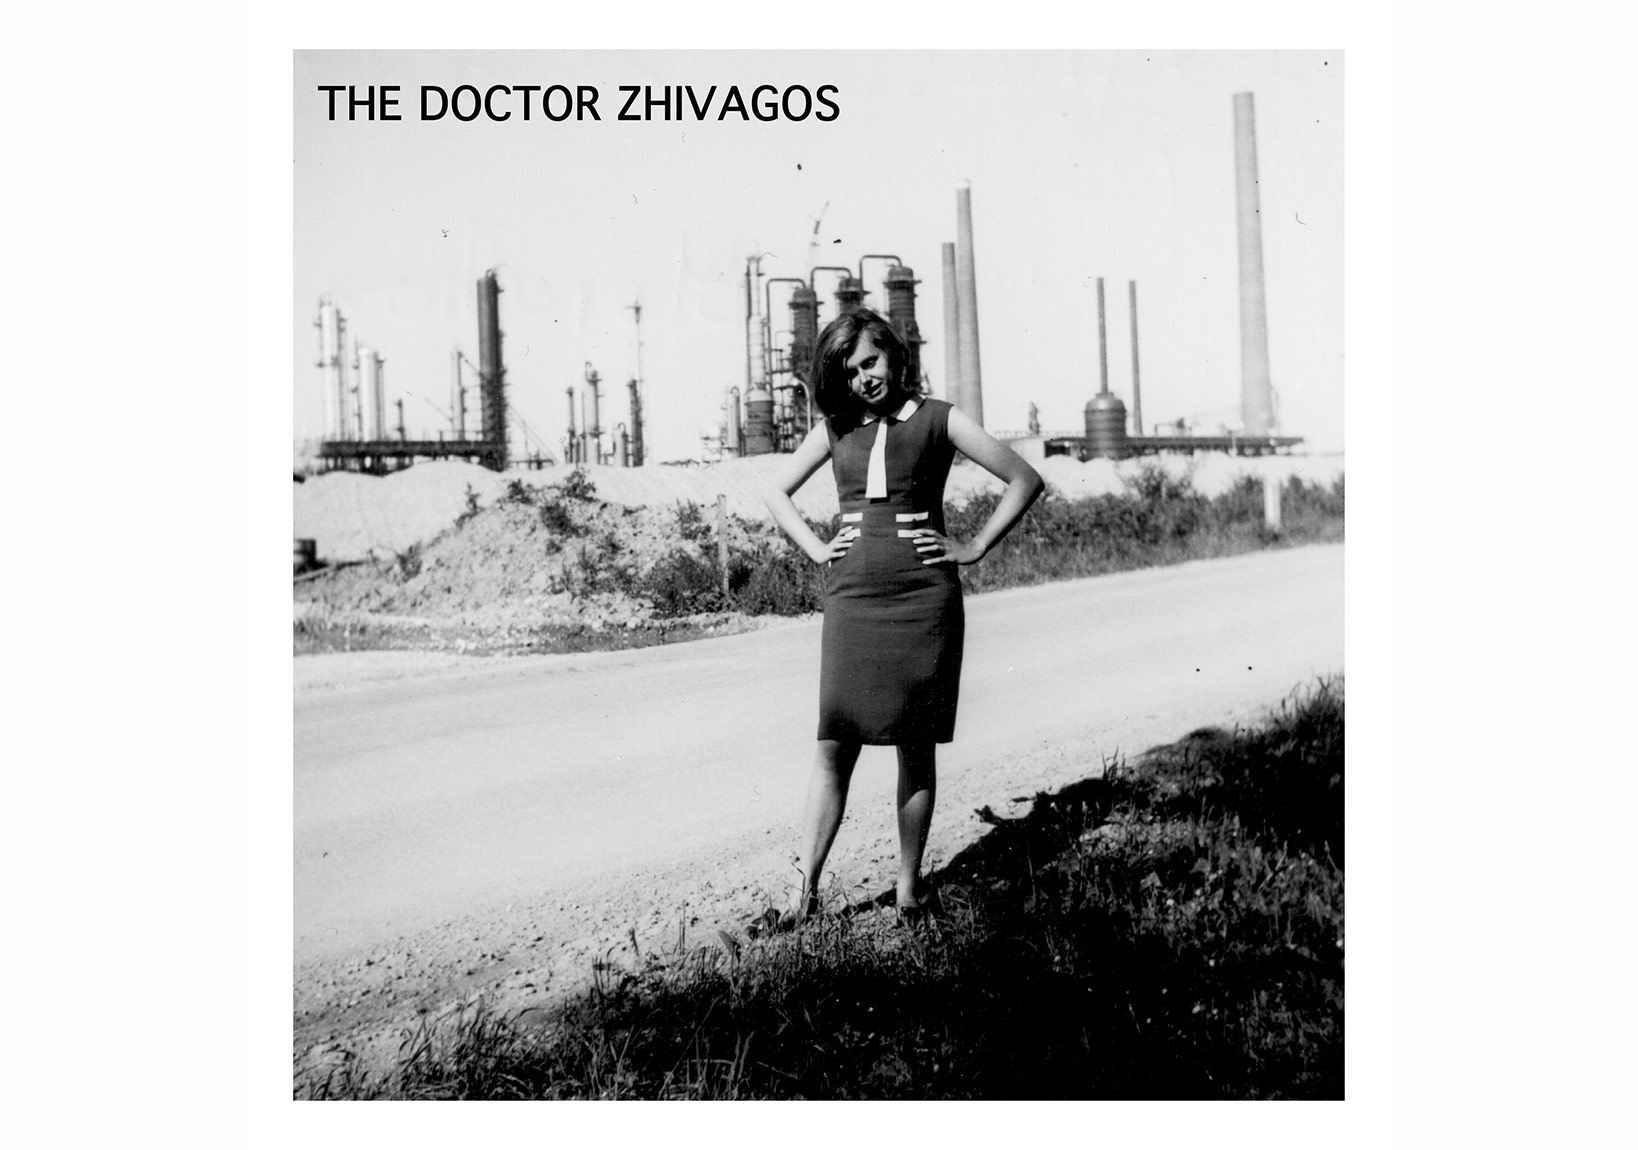 The Doctor Zhivagos and their self-titled album, Enigmatic Figures. Courtesy of the artists.